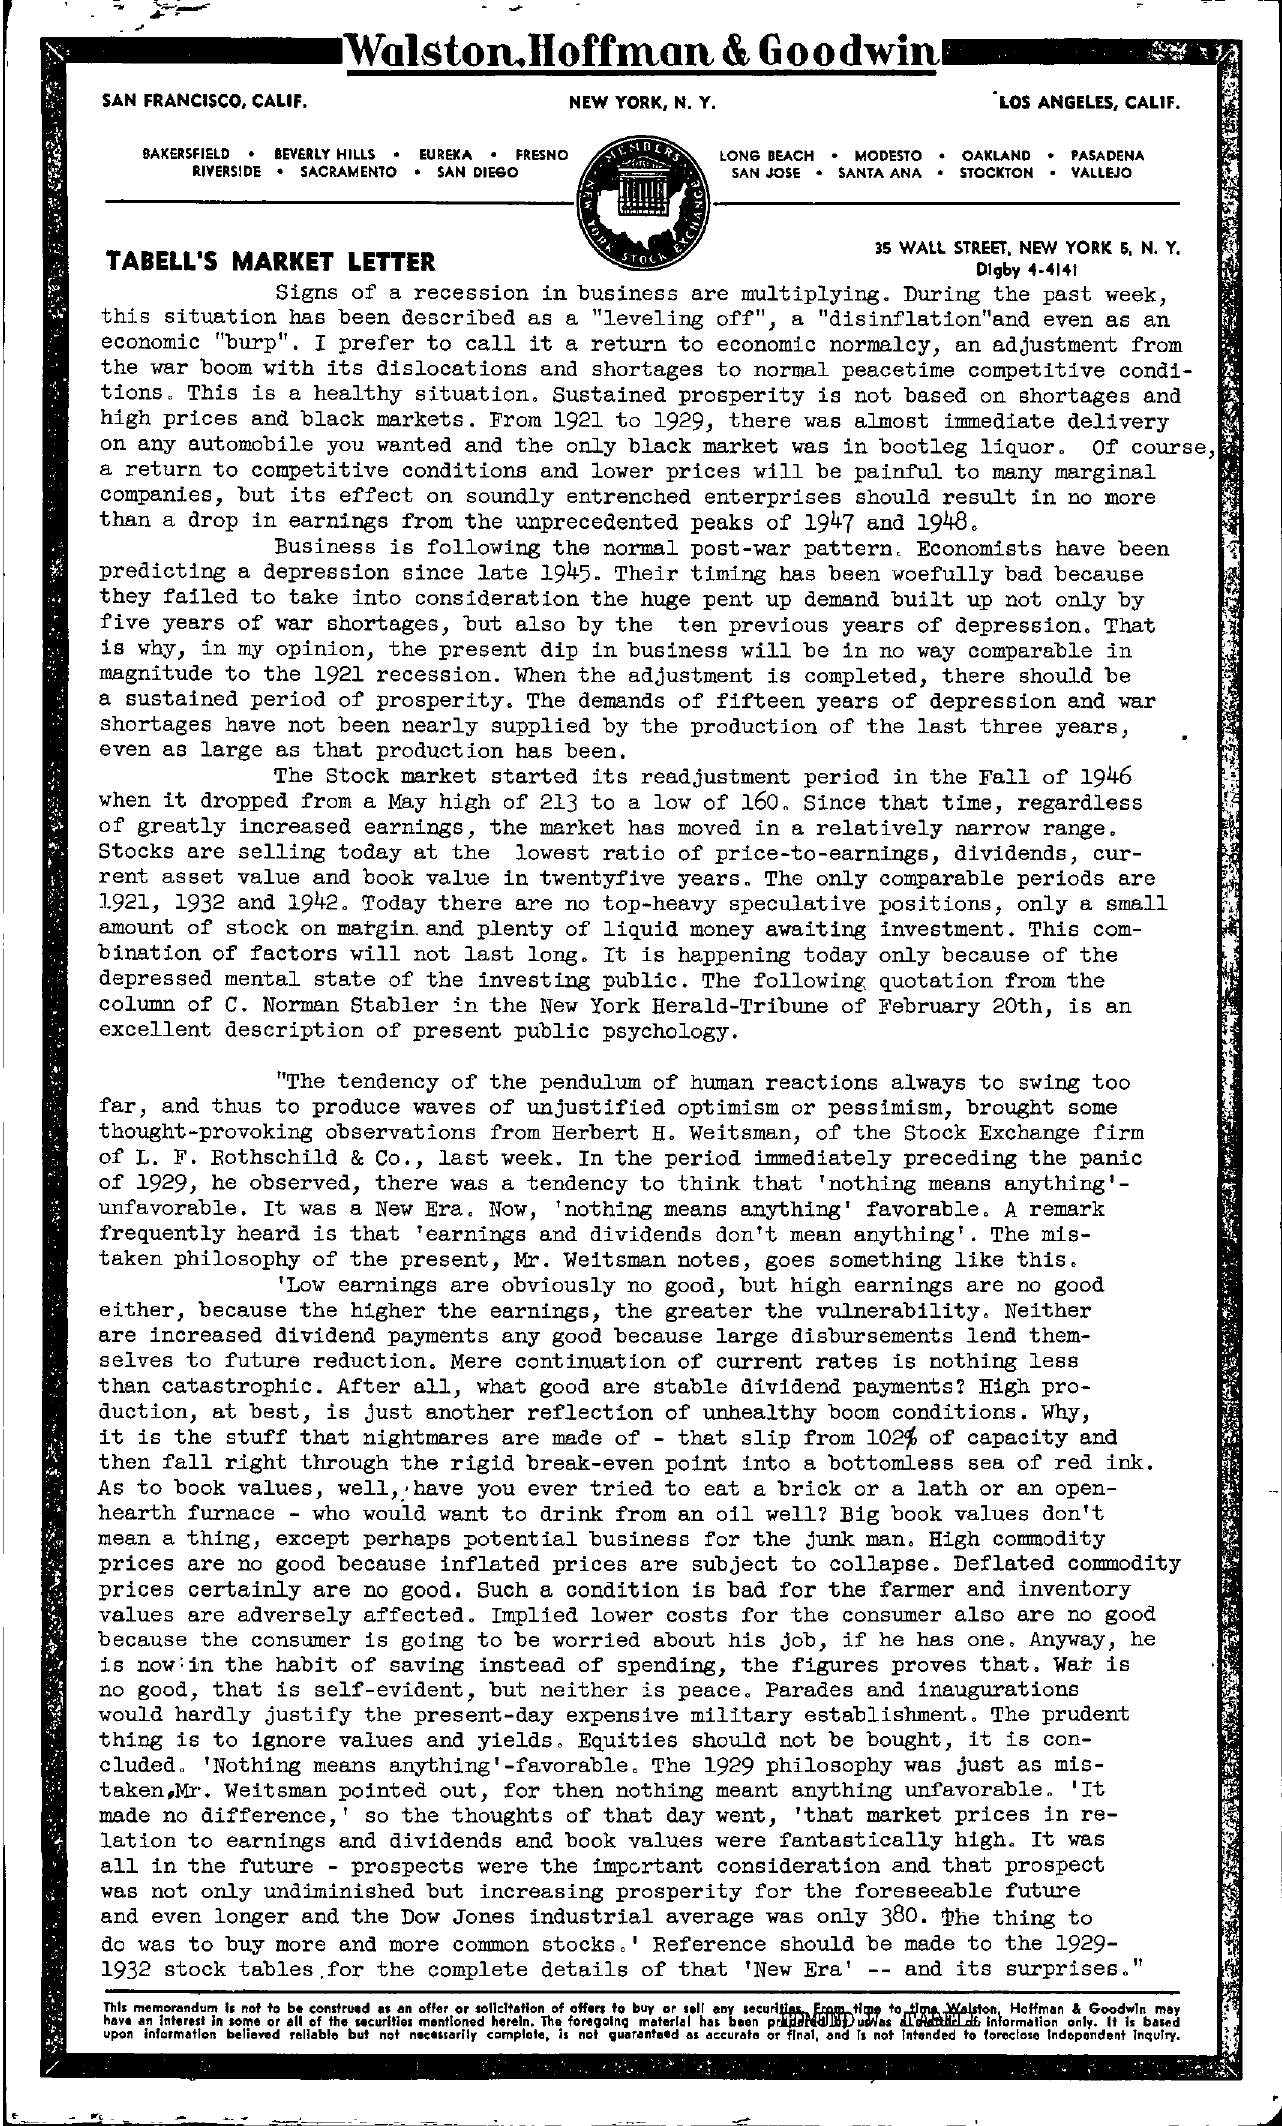 Tabell's Market Letter - February 25, 1949 page 1